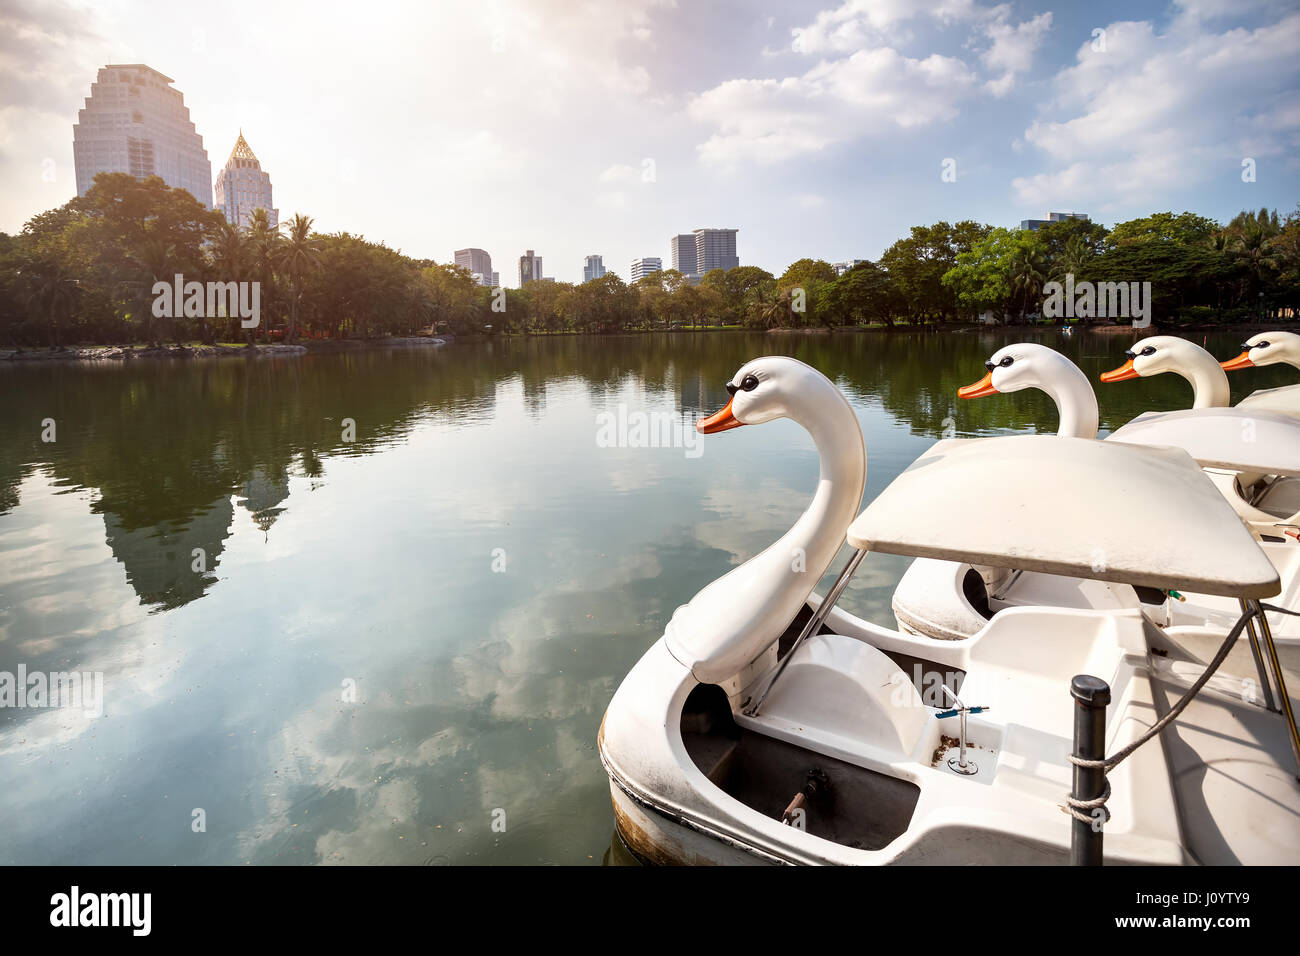 Lake and boat in shape of white swan in the Central Lumpini park of Bangkok, Thailand - Stock Image